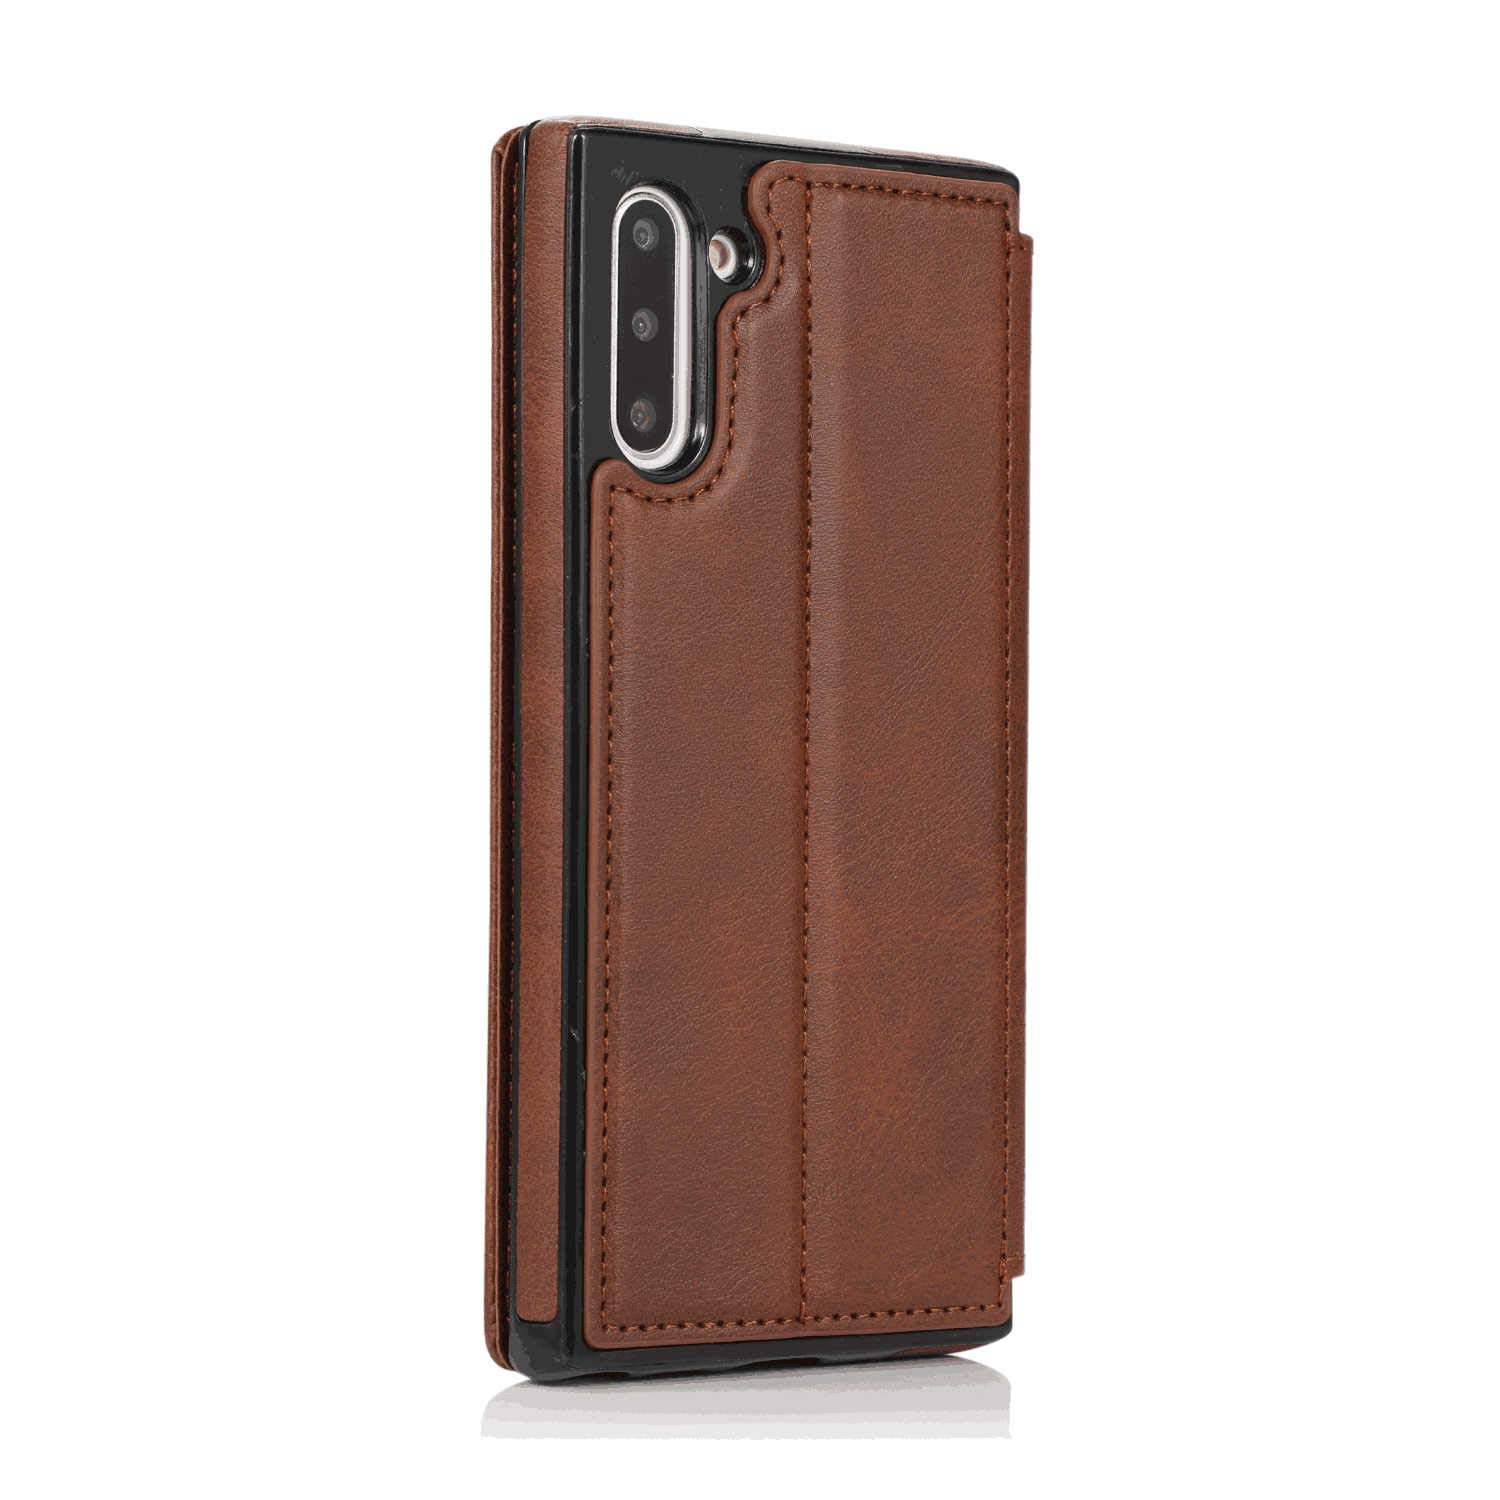 Business-Design Flip Cover for Samsung Galaxy S9 PU Leather Case Compatible with Samsung Galaxy S9 Cell Phone